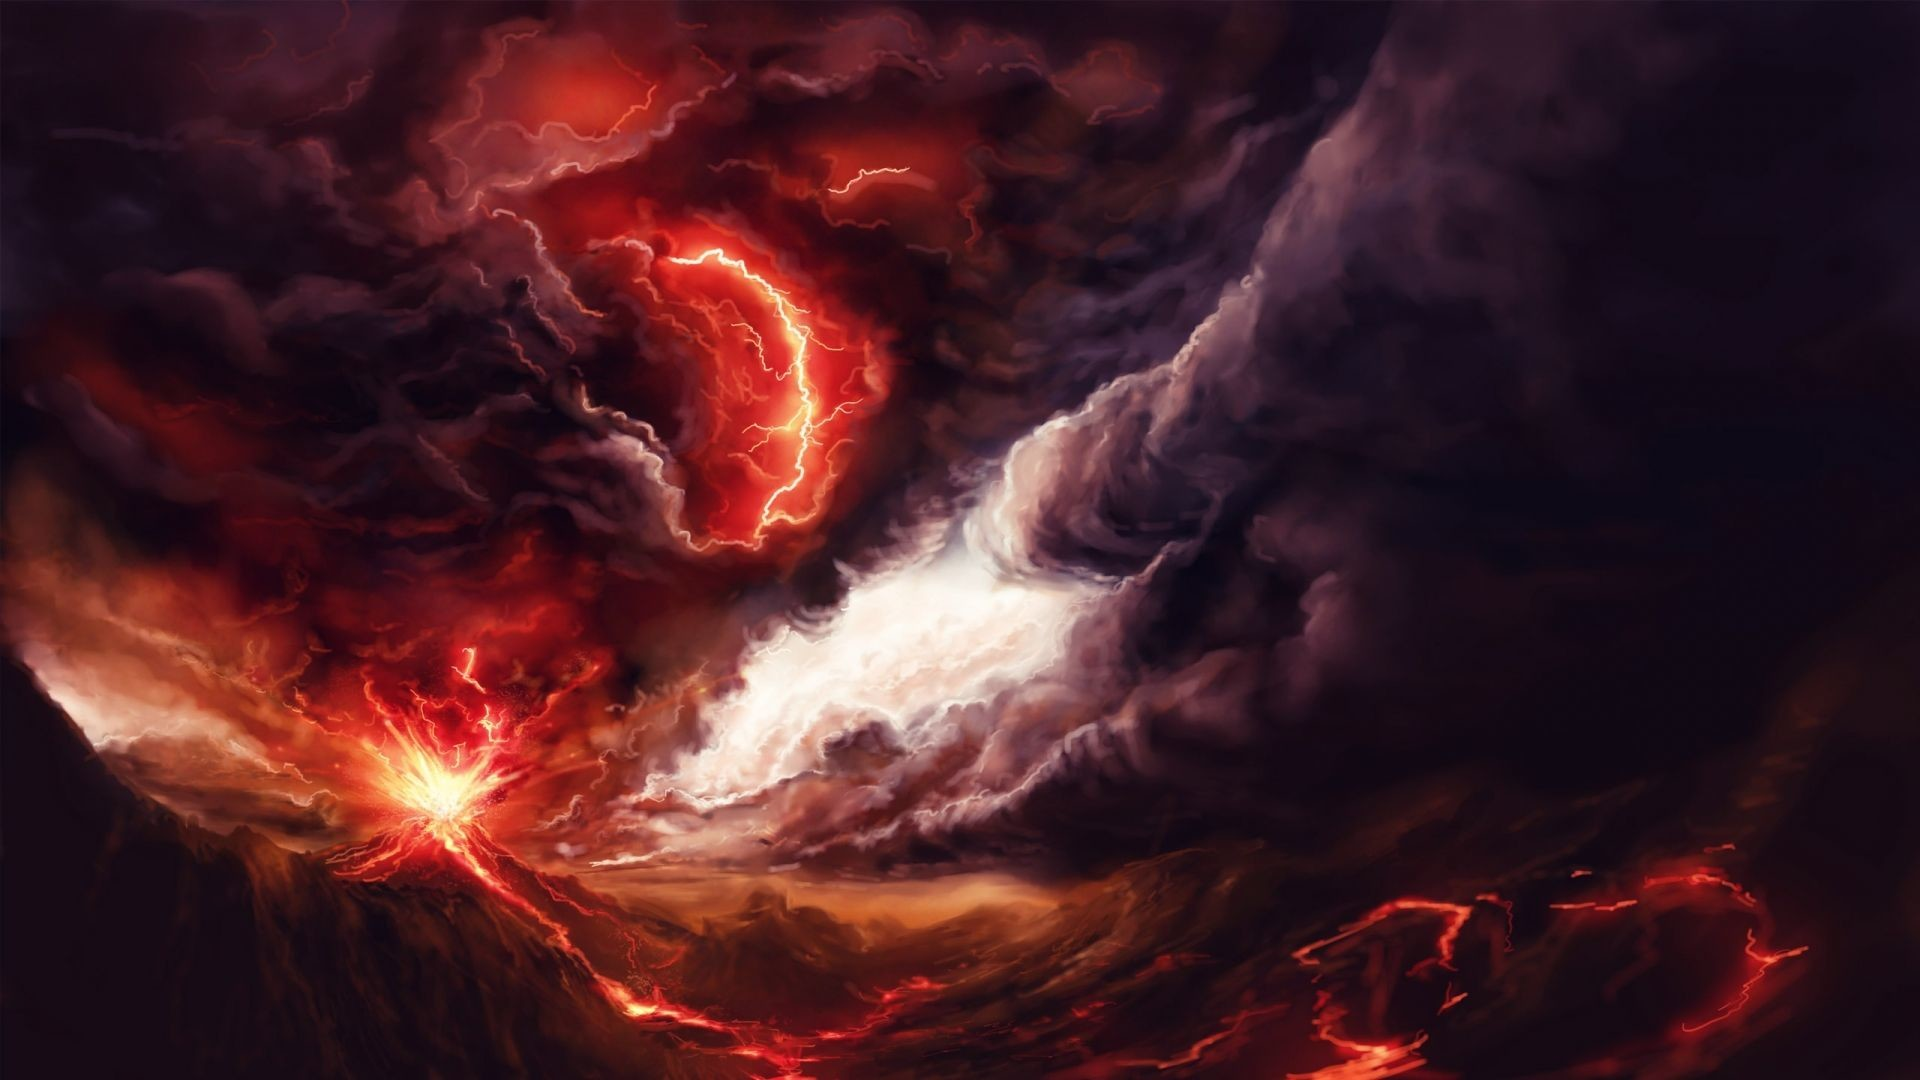 Res: 1920x1080, Volcanic Eruption From Space wallpapers Wallpapers) – Art Wallpapers.  a46da890036e01223d14d1a456501e86.jpg 1,920×1,080 pixels